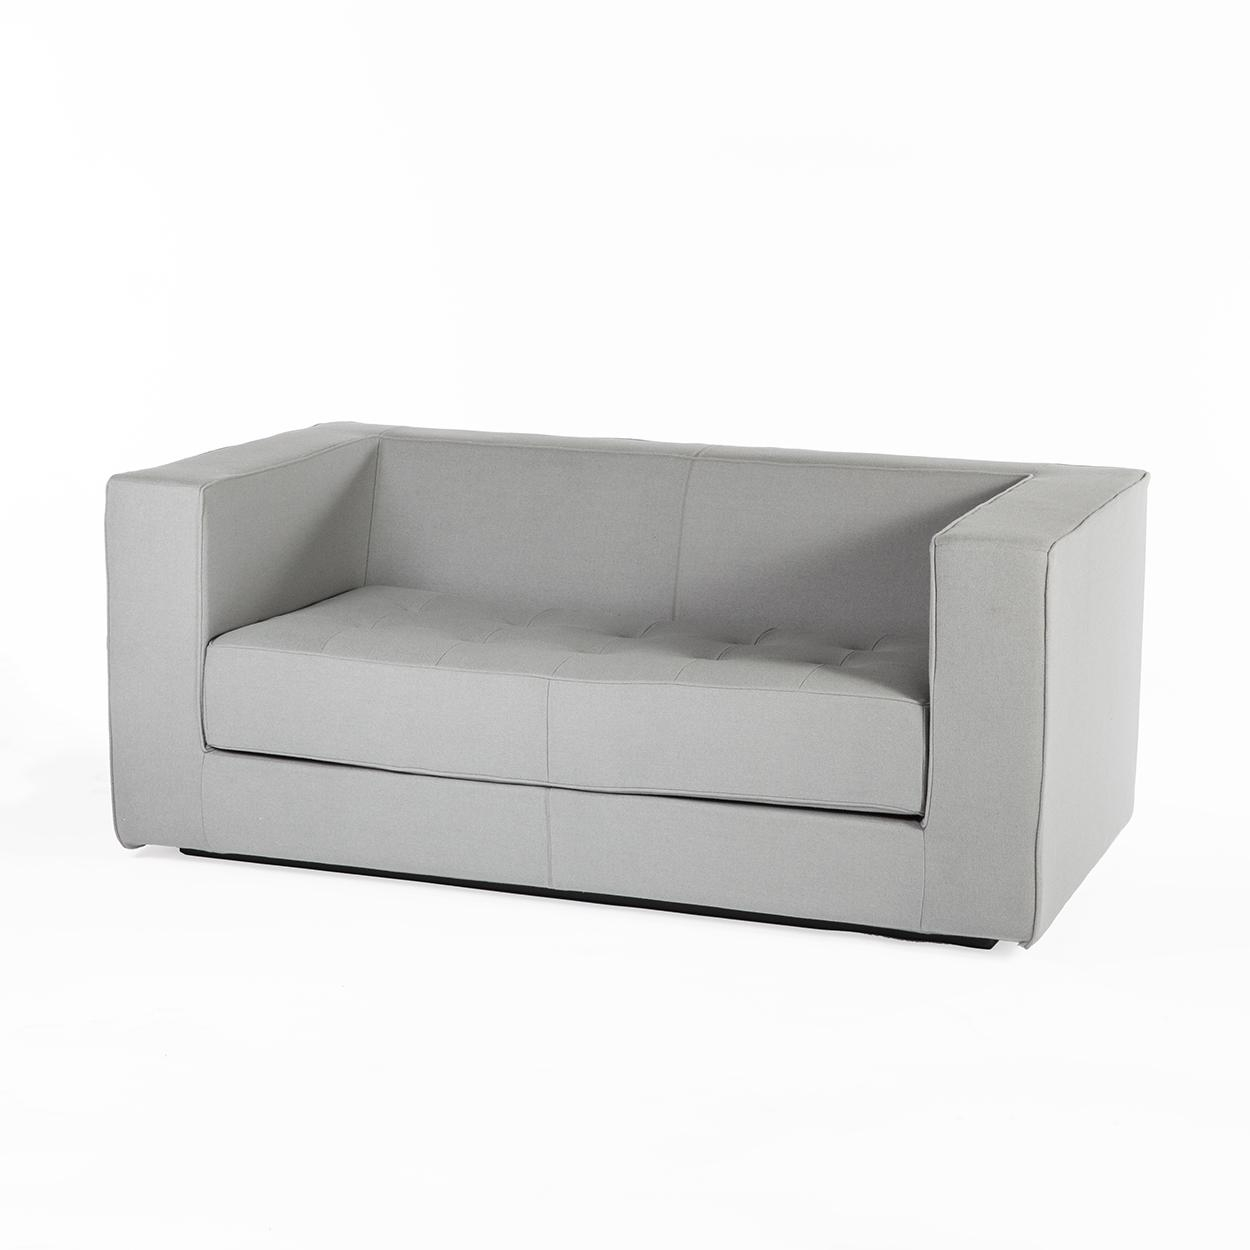 Mid Century Sofas, Modern Sectional Sofas, Modern With Mid Century Modern Sectional (Image 12 of 20)